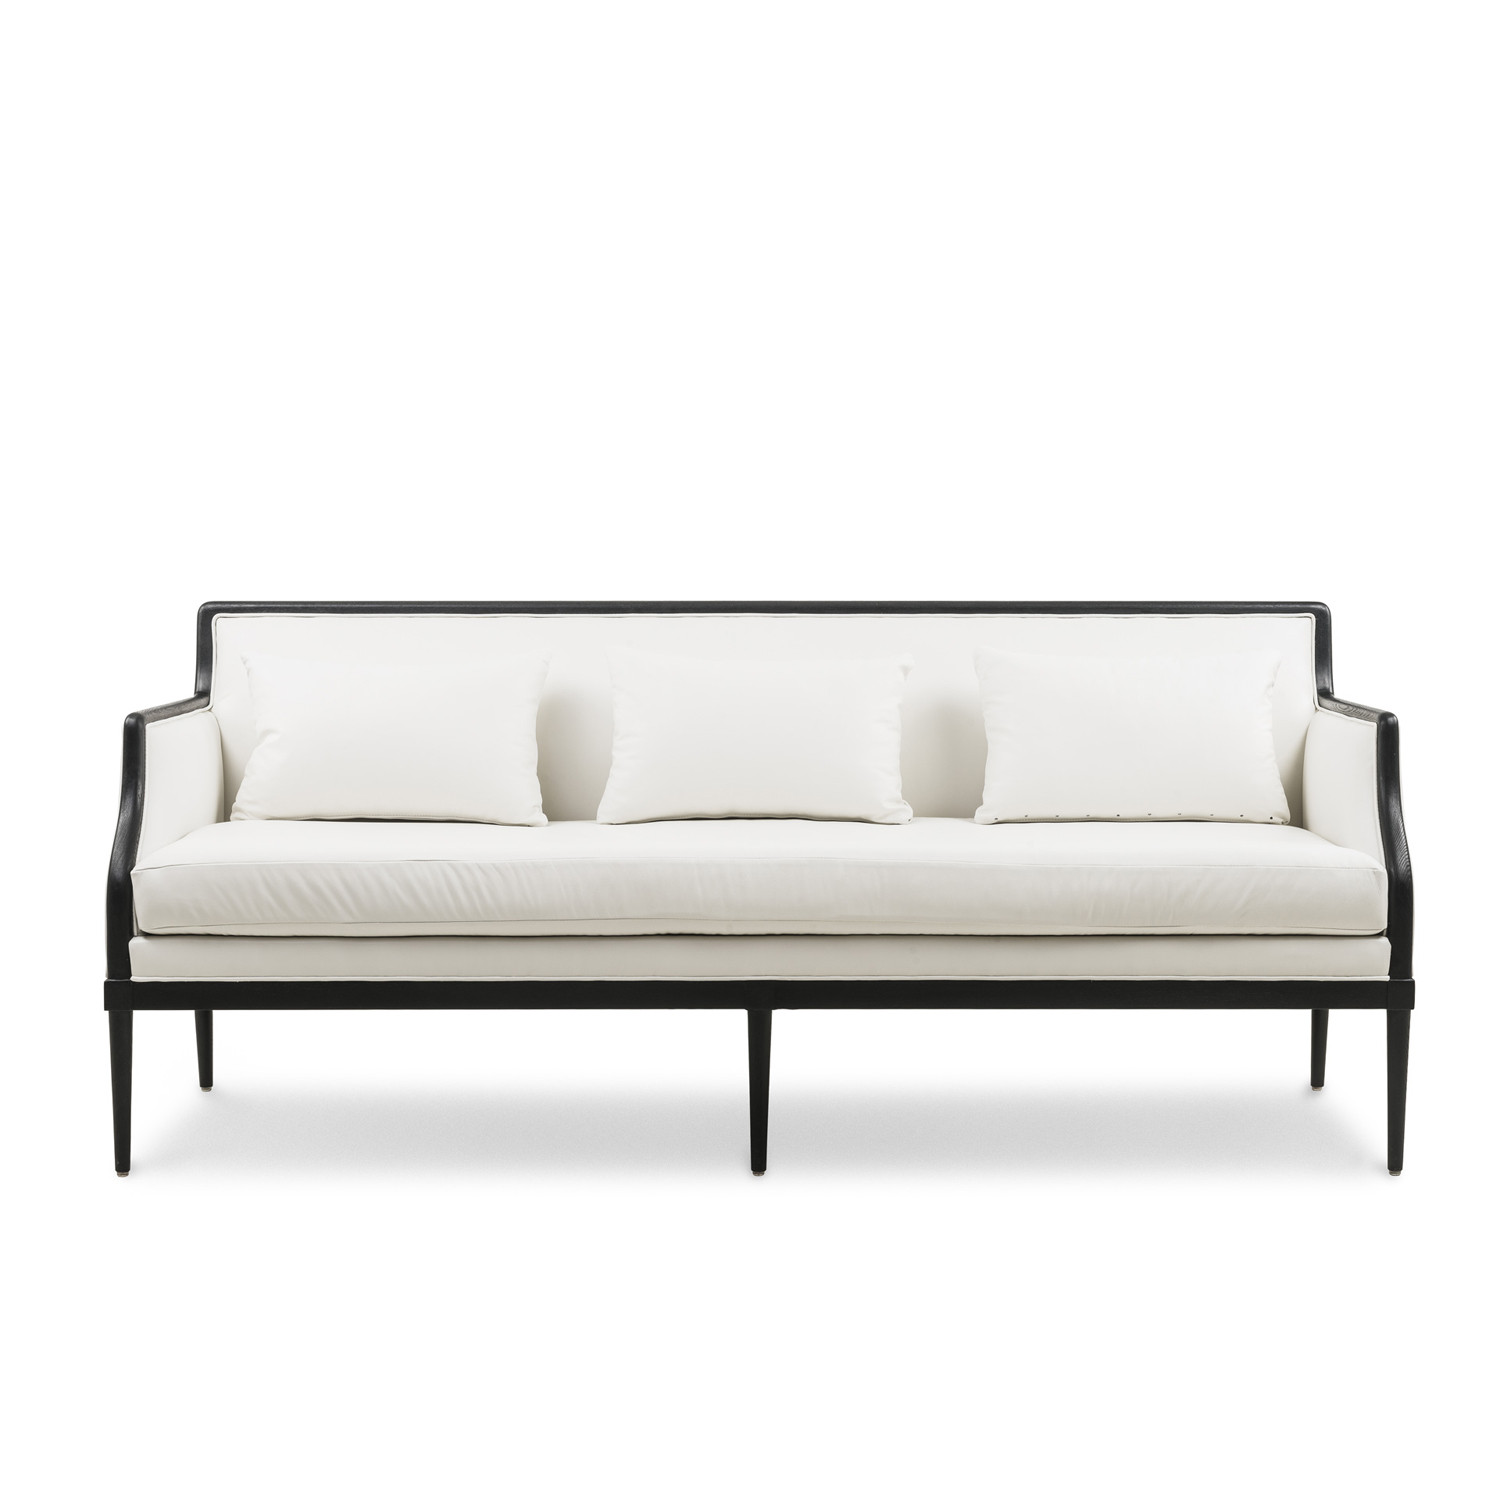 Front Elevation Of Sofa : Laval sofa stellar works touch of modern